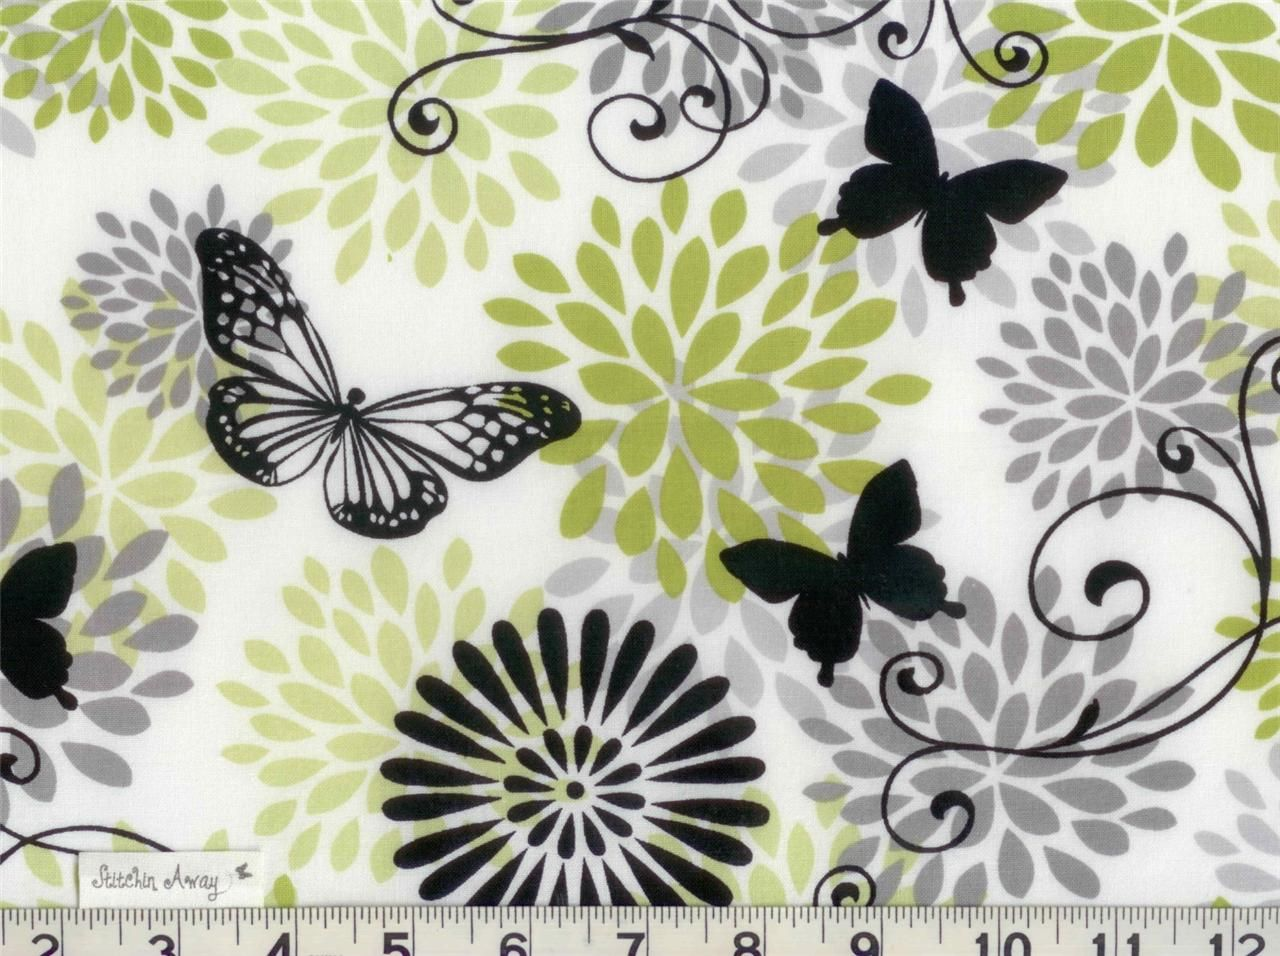 GLAMOUR GIRL Quilting FABRIC 100% Cotton Black, White, Gray, Lime ...